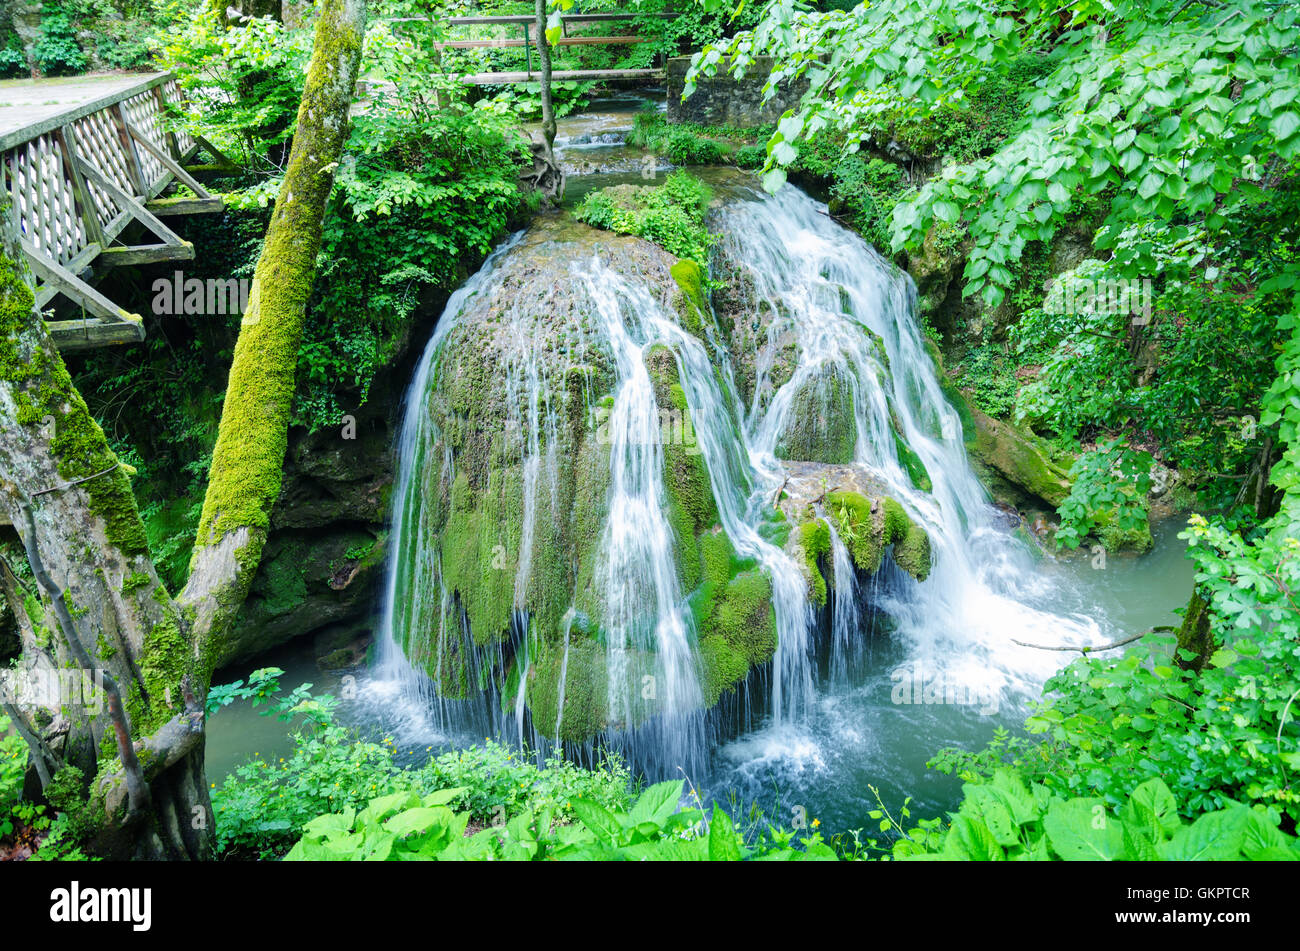 Waterfalls Bigar One Of The Most Beautiful In World Located Romania